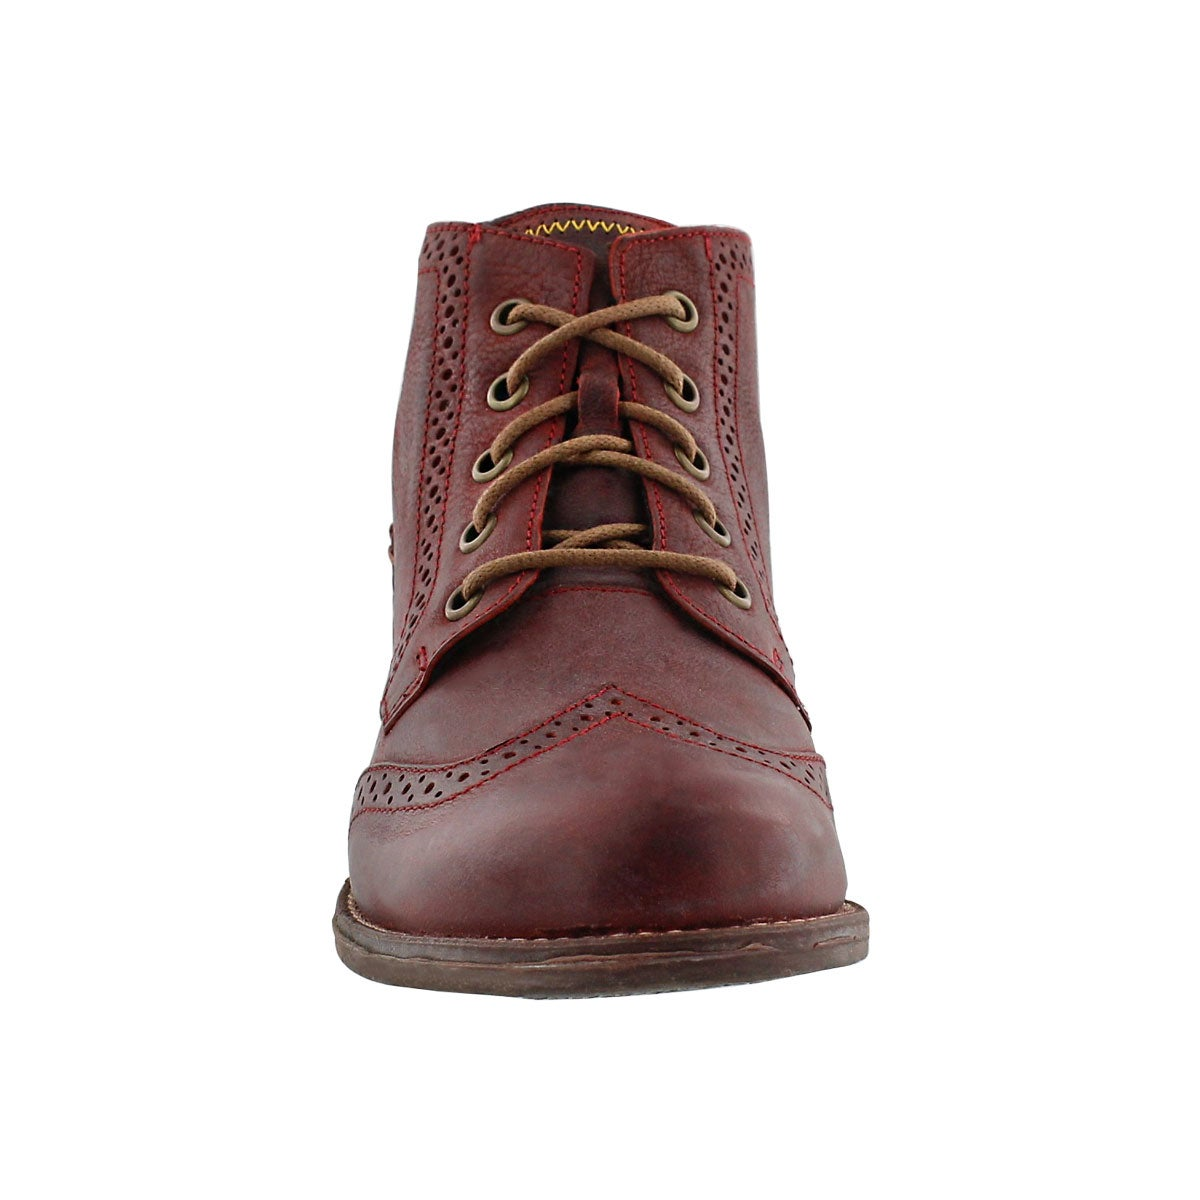 Lds Sienna 15 wine ankle boot